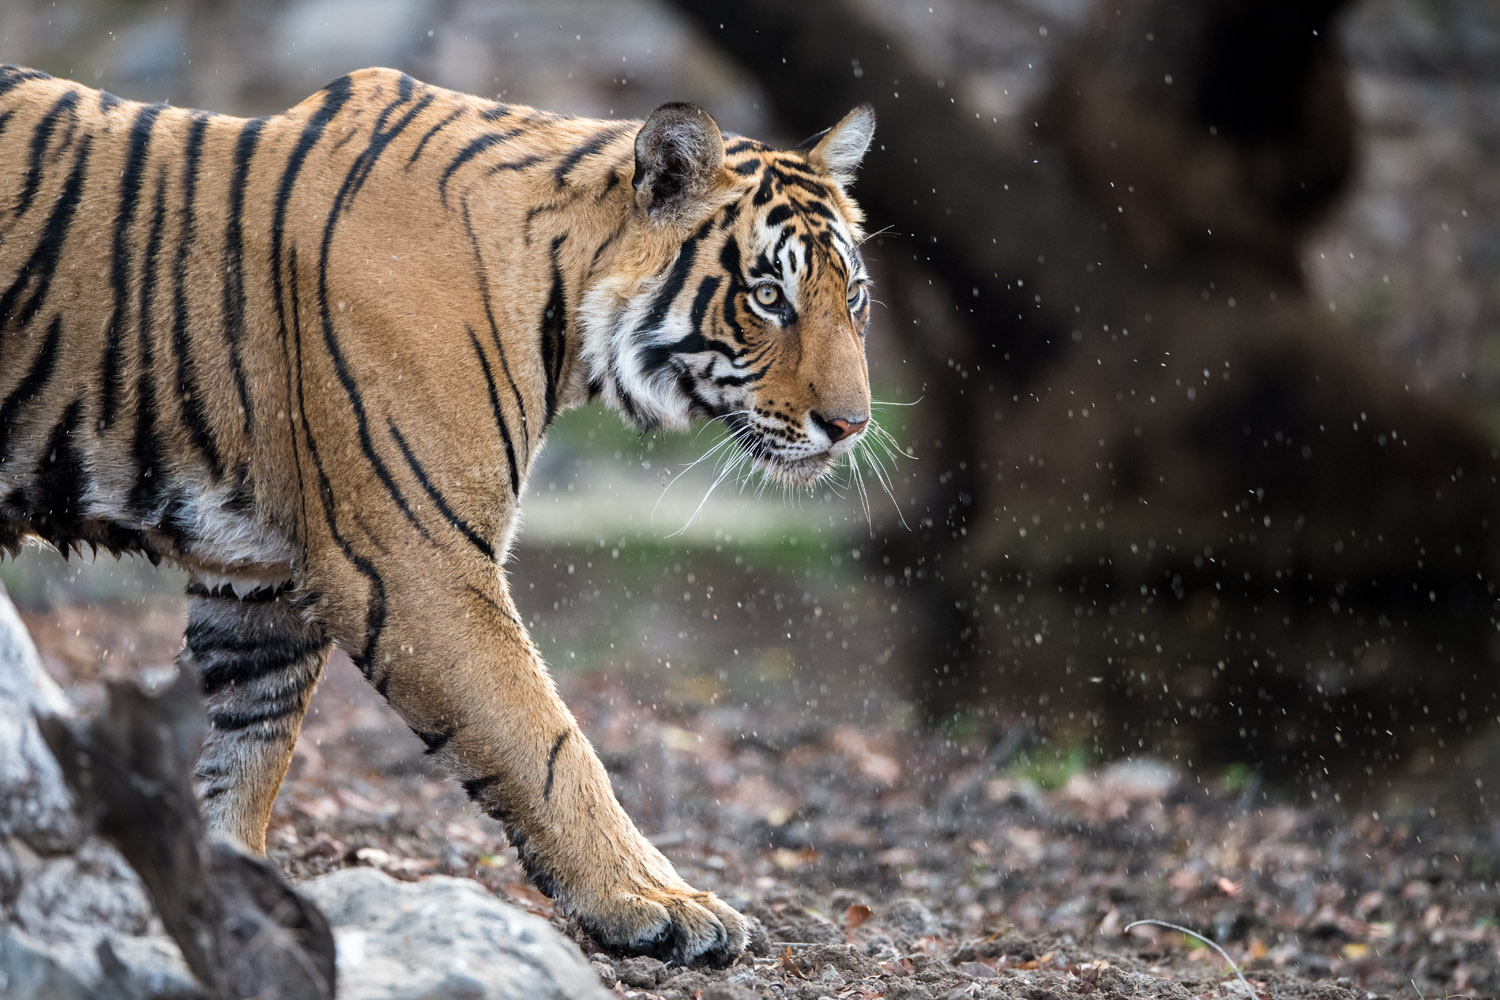 Bengal tiger, Ranthambhore National Park, Rajasthan, India